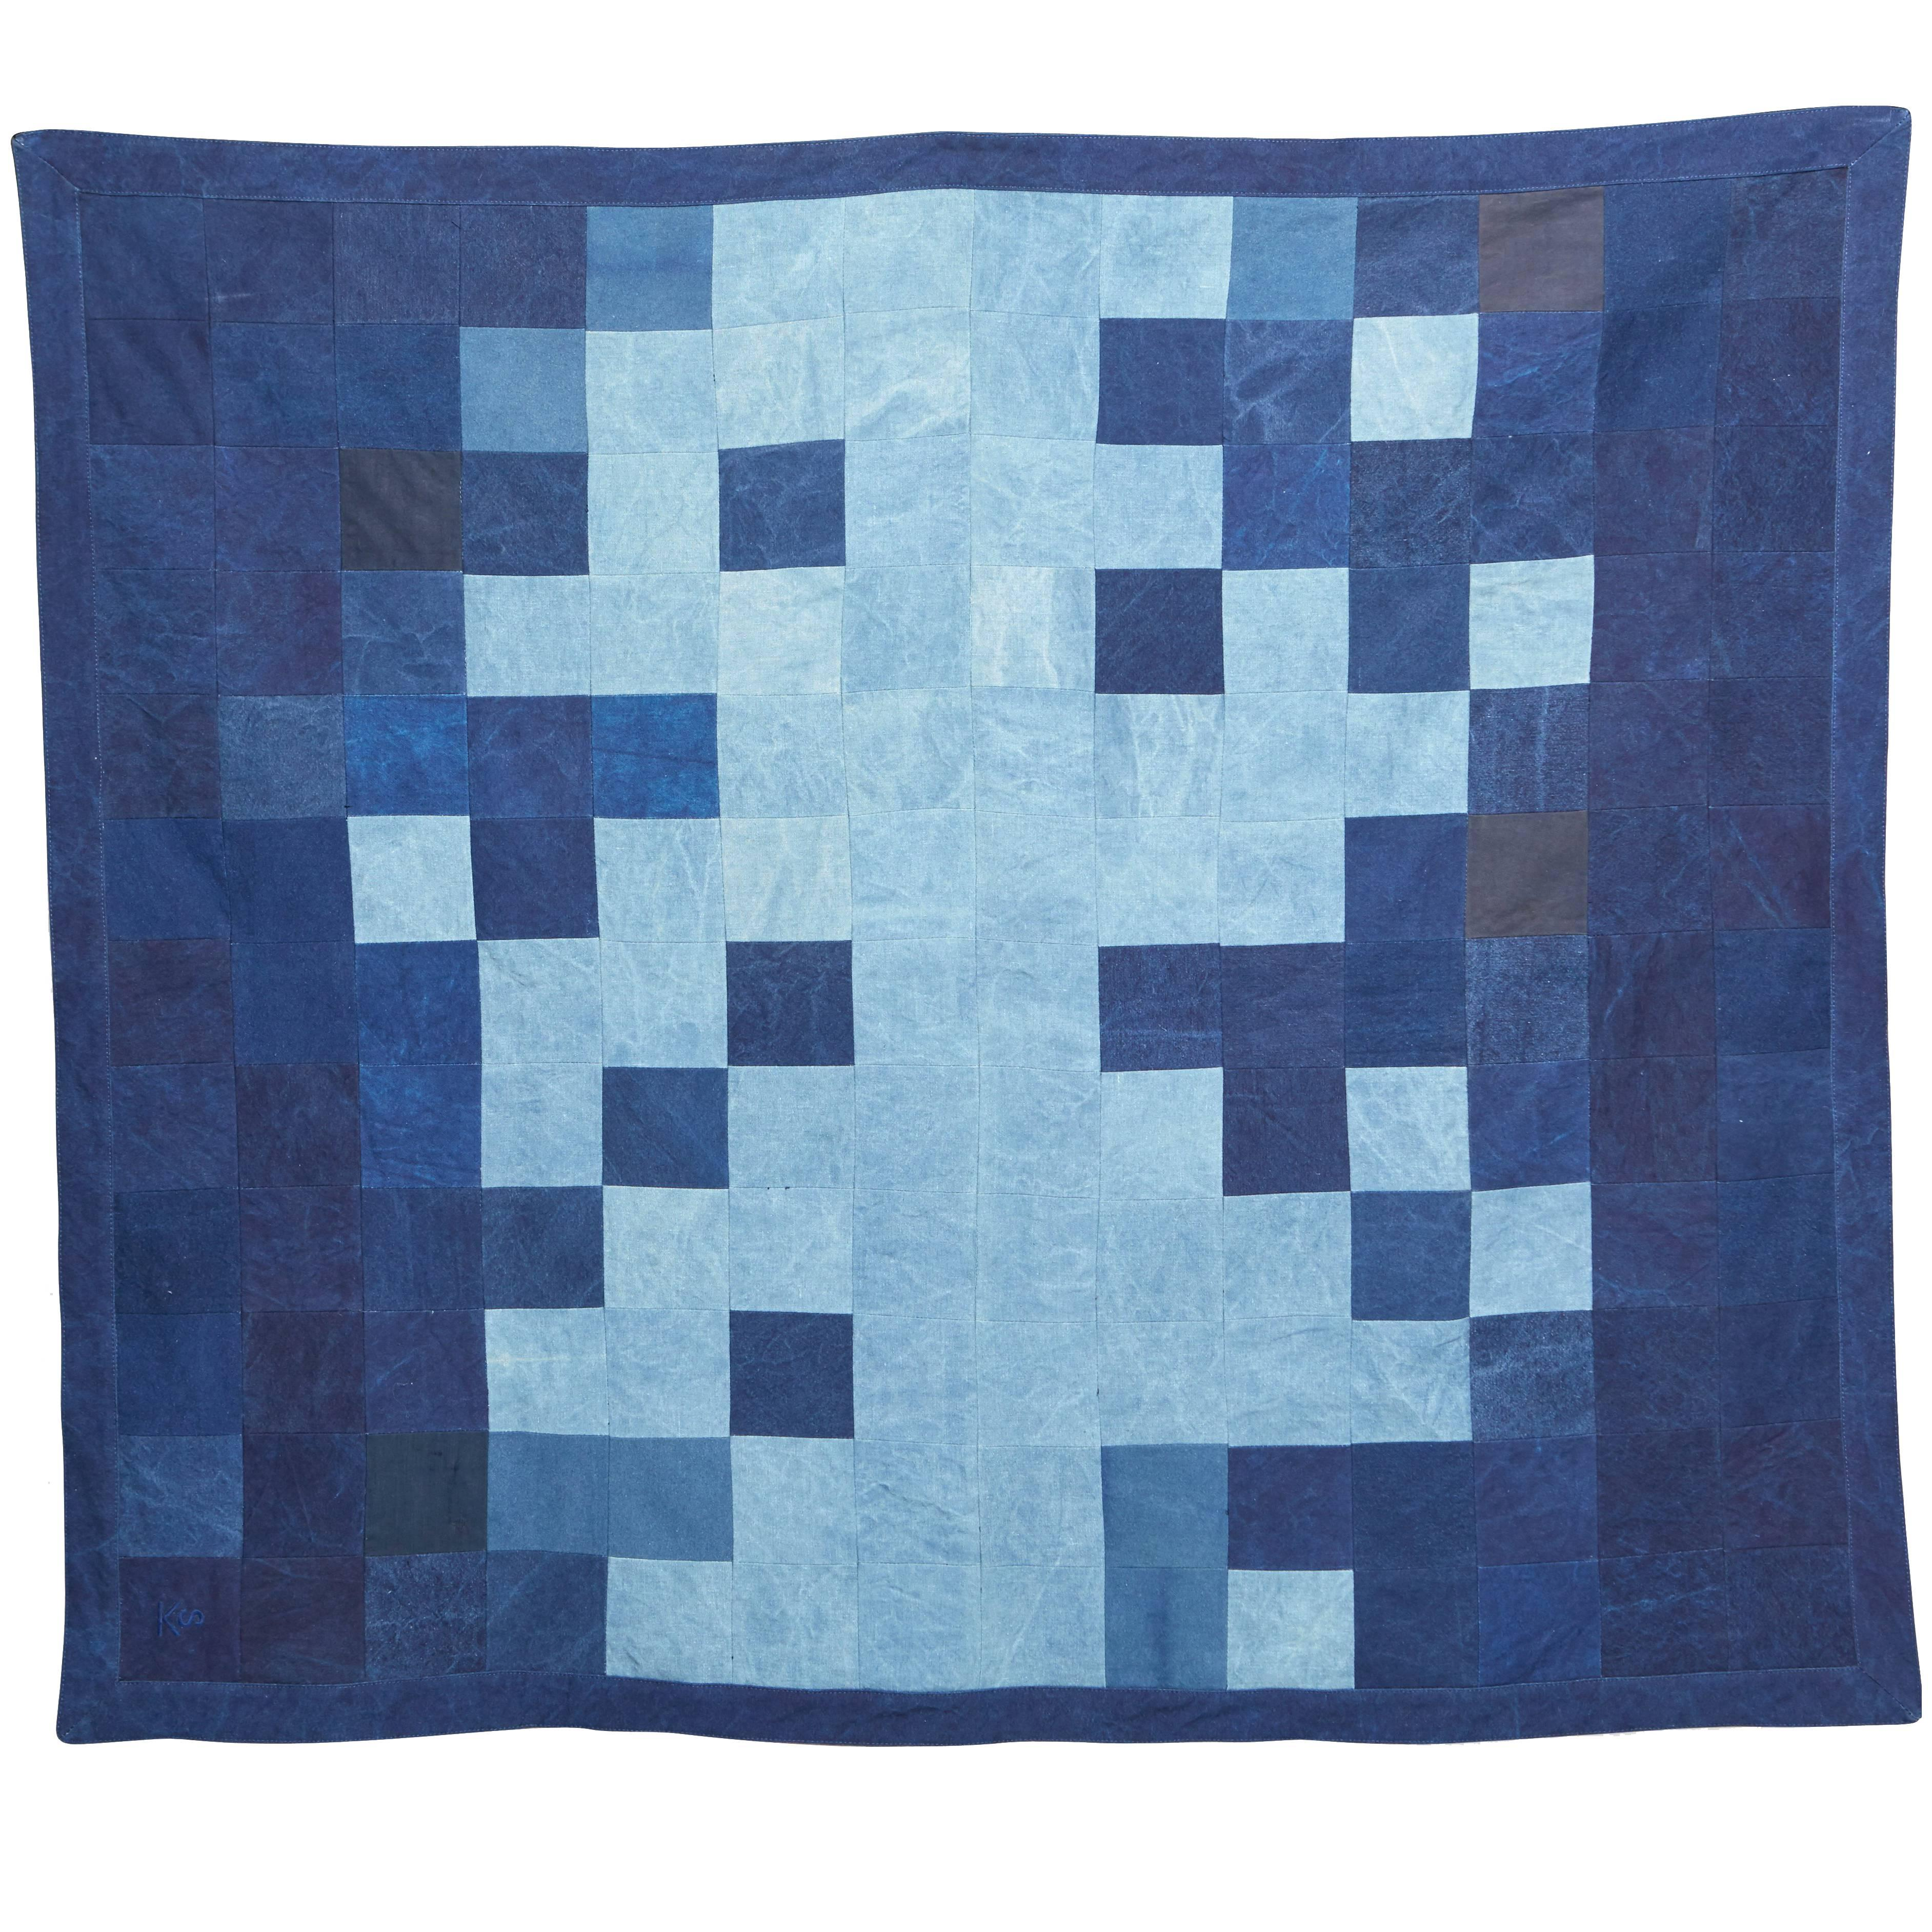 Quilted Indigo Canvas Throw Blanket V1